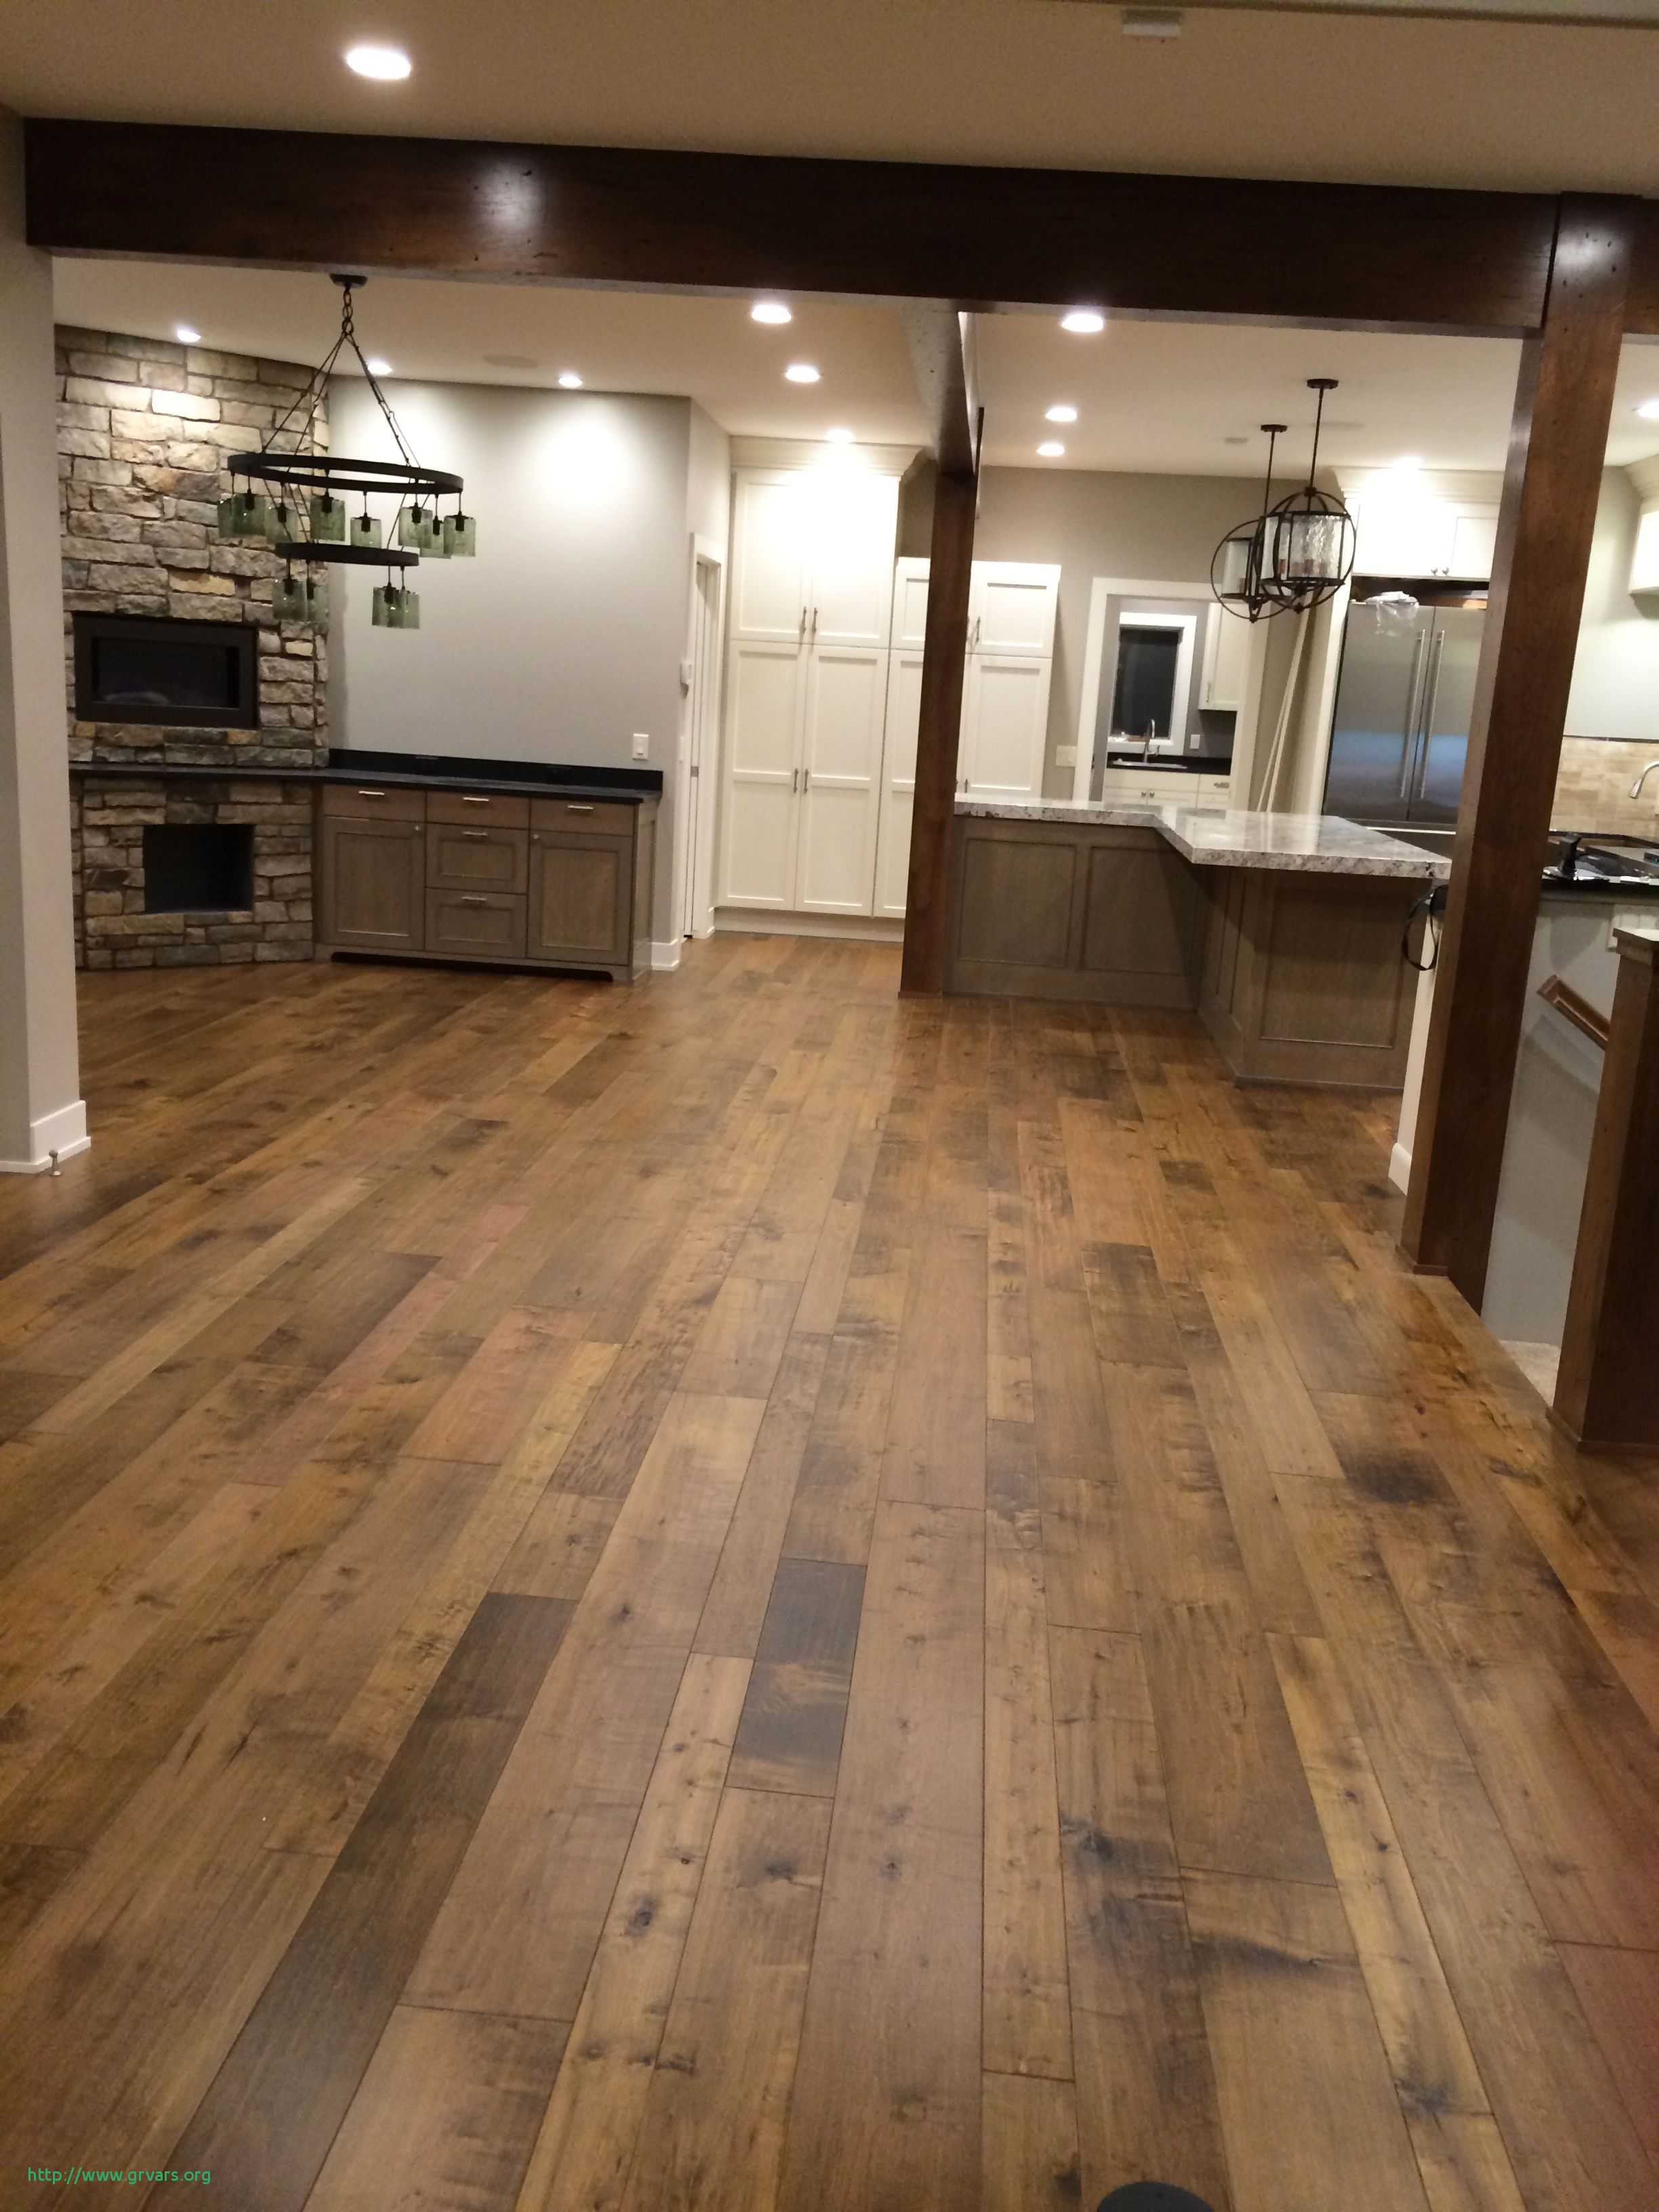 21 Trendy Hardwood Floor Sanding toronto 2021 free download hardwood floor sanding toronto of 17 meilleur de hardwood floor installers toronto ideas blog inside 17 photos of the 17 meilleur de hardwood floor installers toronto